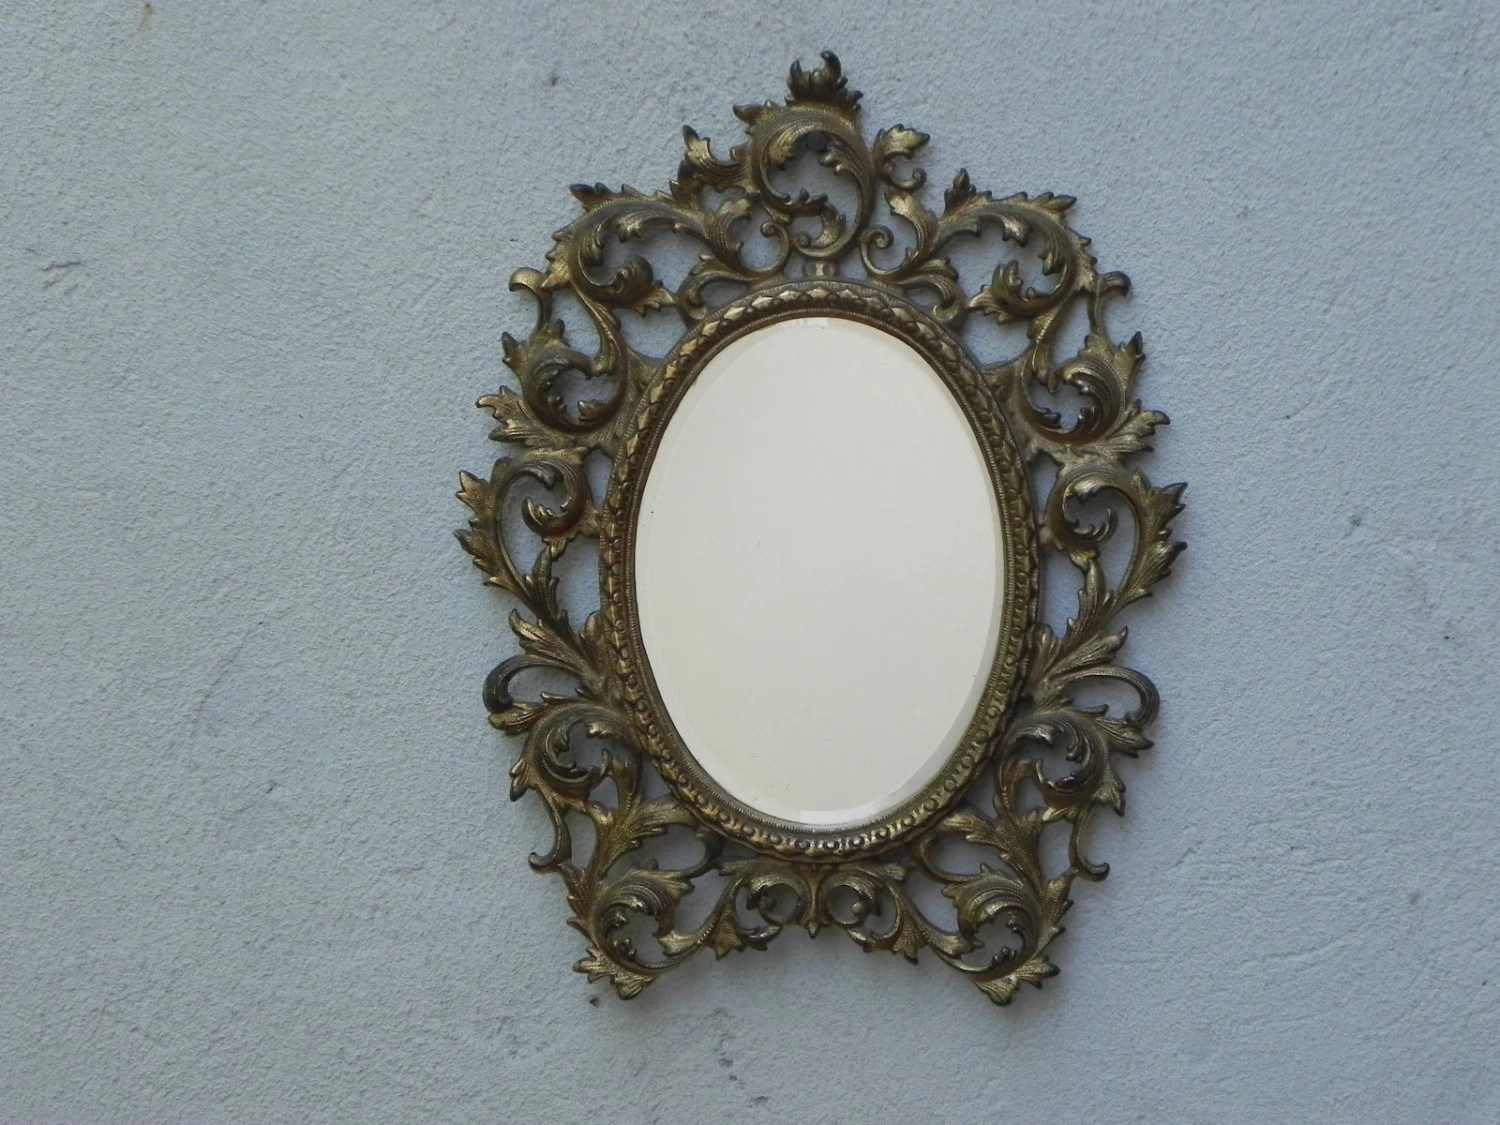 Small Gold Cast Metal Beveled Oval Wall Mirror